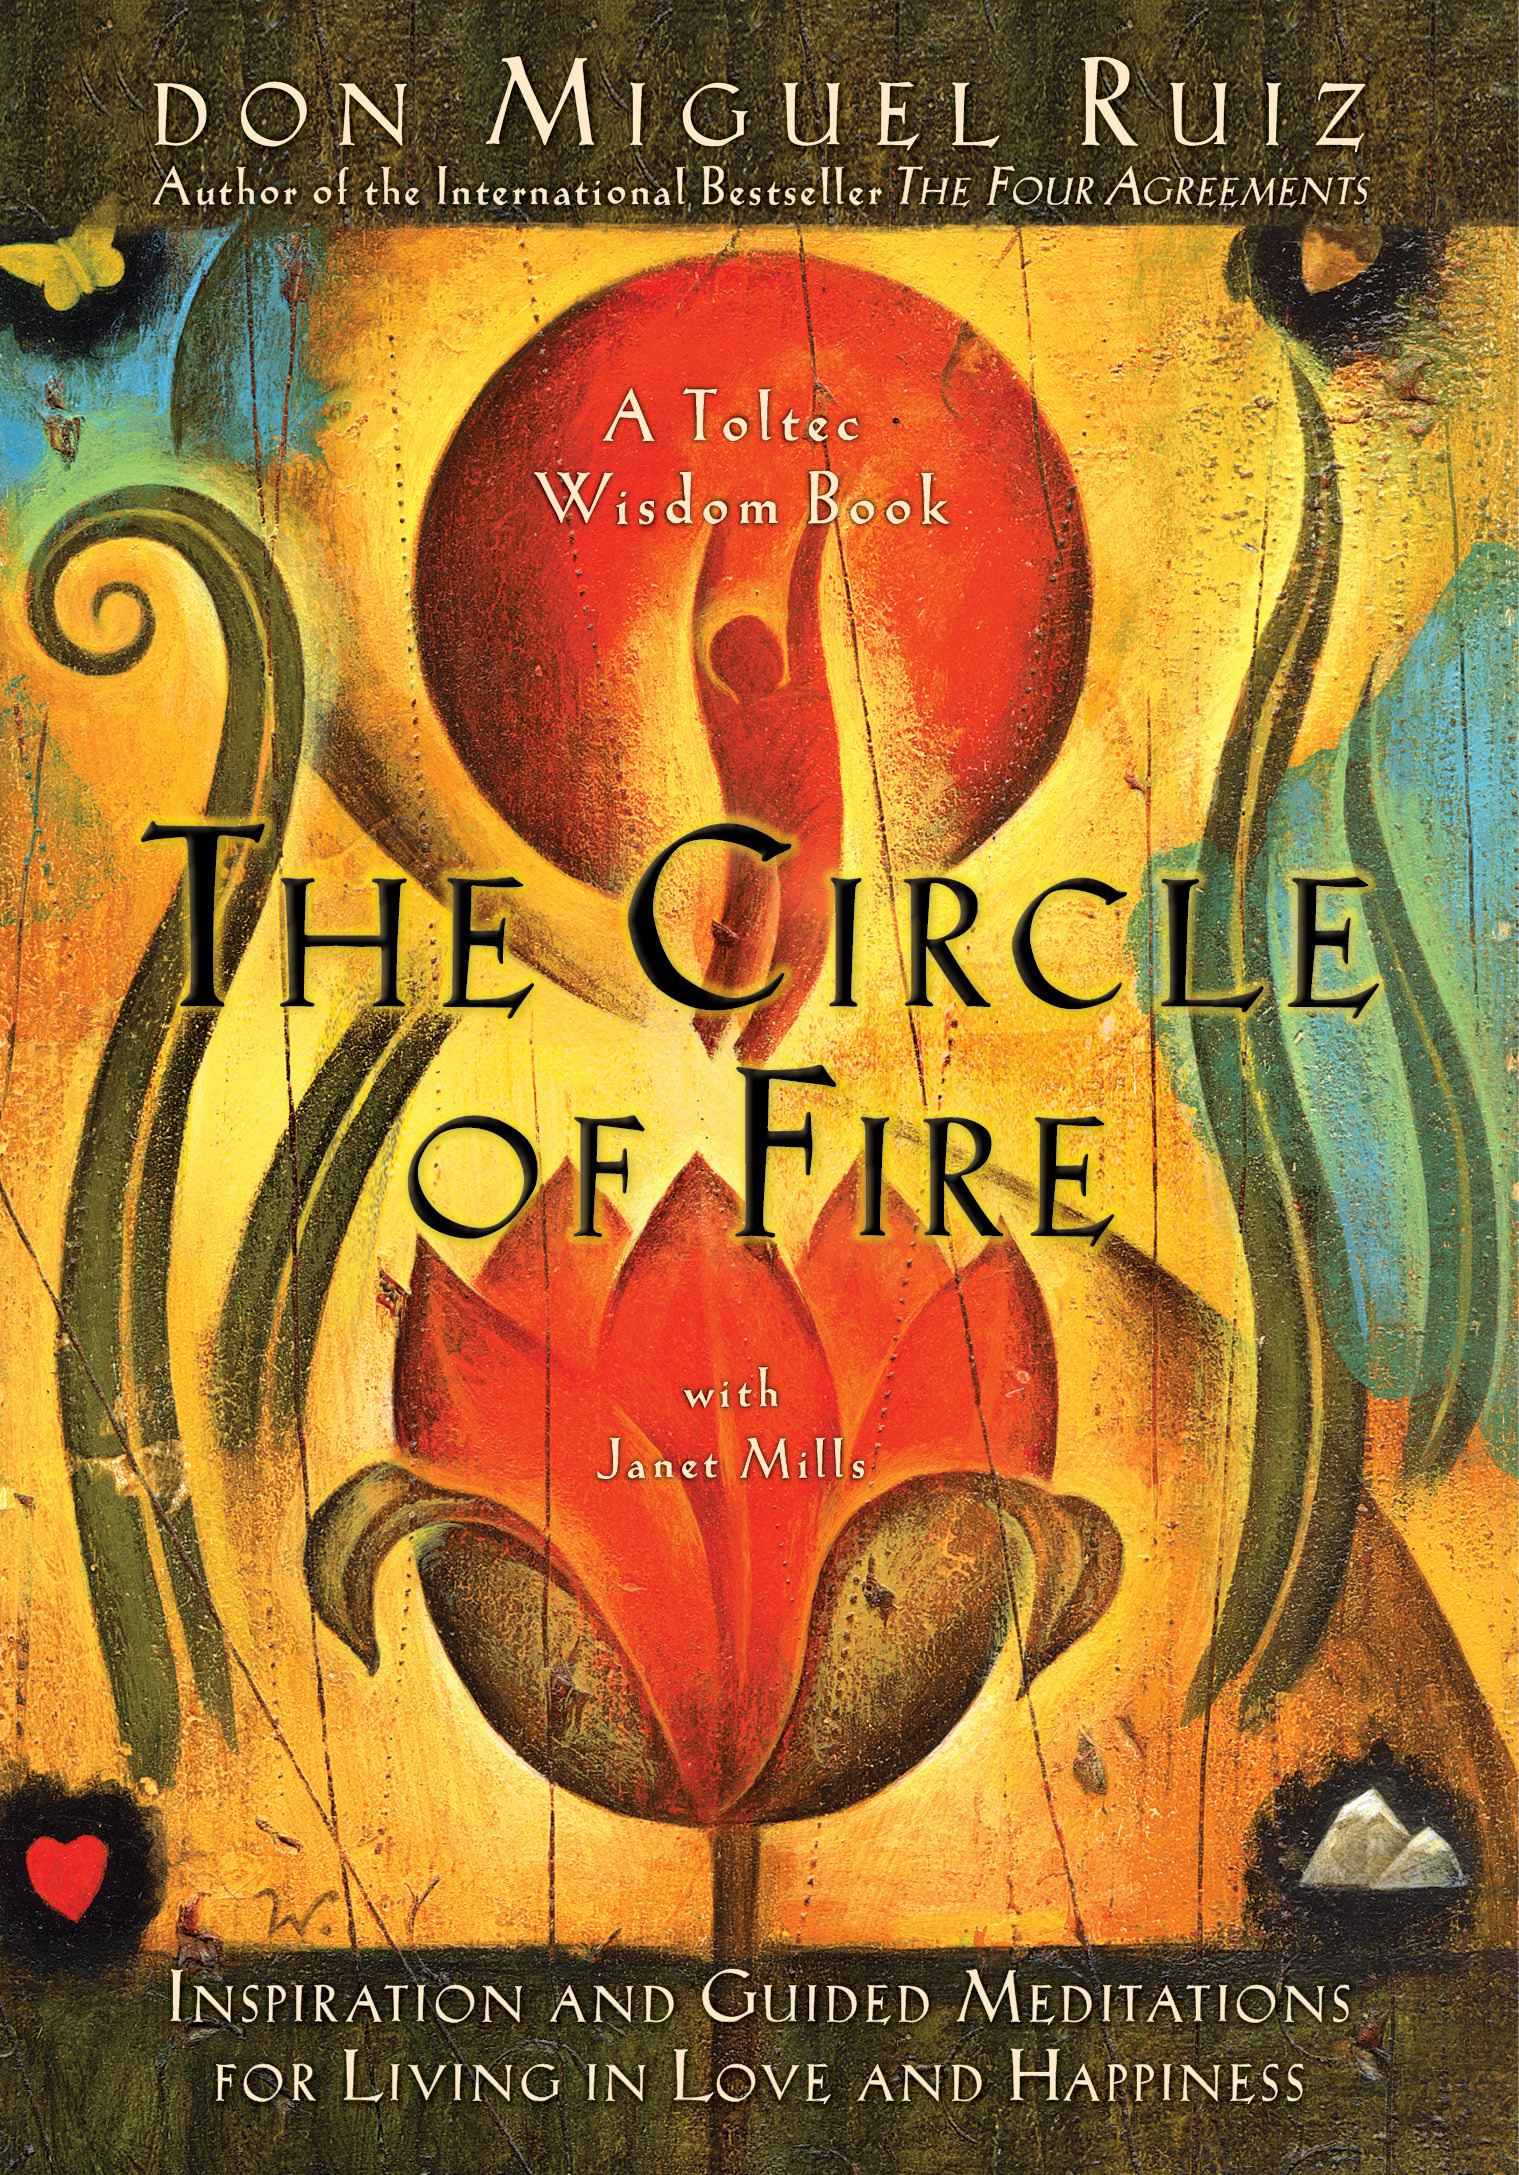 Four Agreements Book Free Download The Circle Of Fire Don Miguel Ruiz Pdf Free Ebooks Download